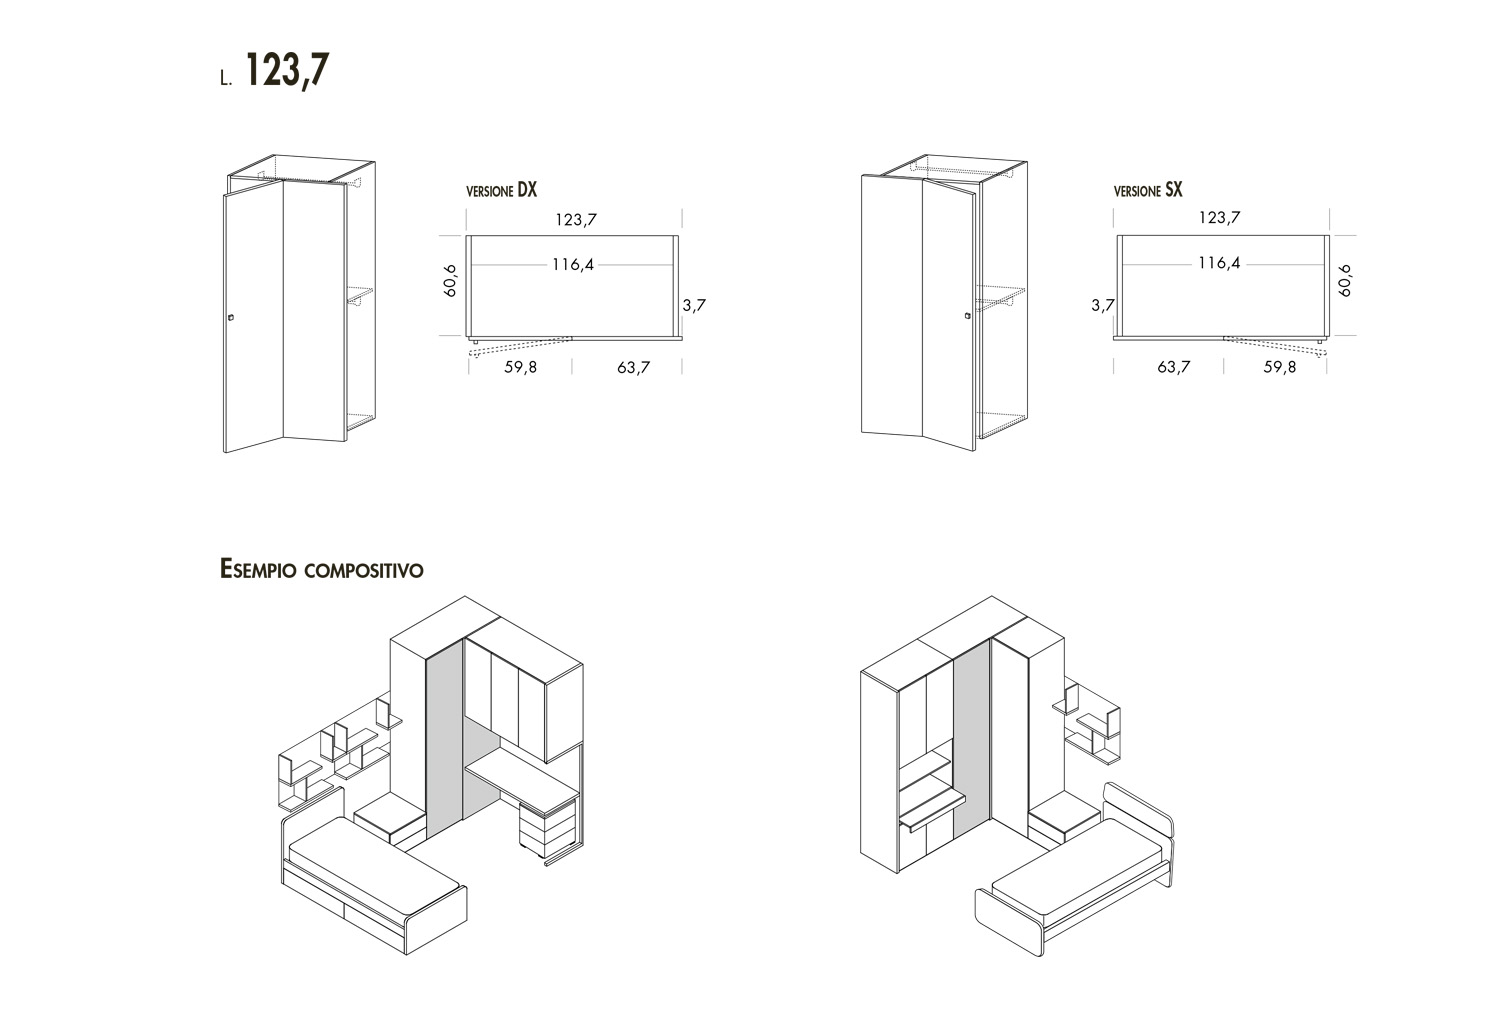 Examples of use of the w.123,7 cm unit: with desk and bridging cabinets or with 1 door wardrobe